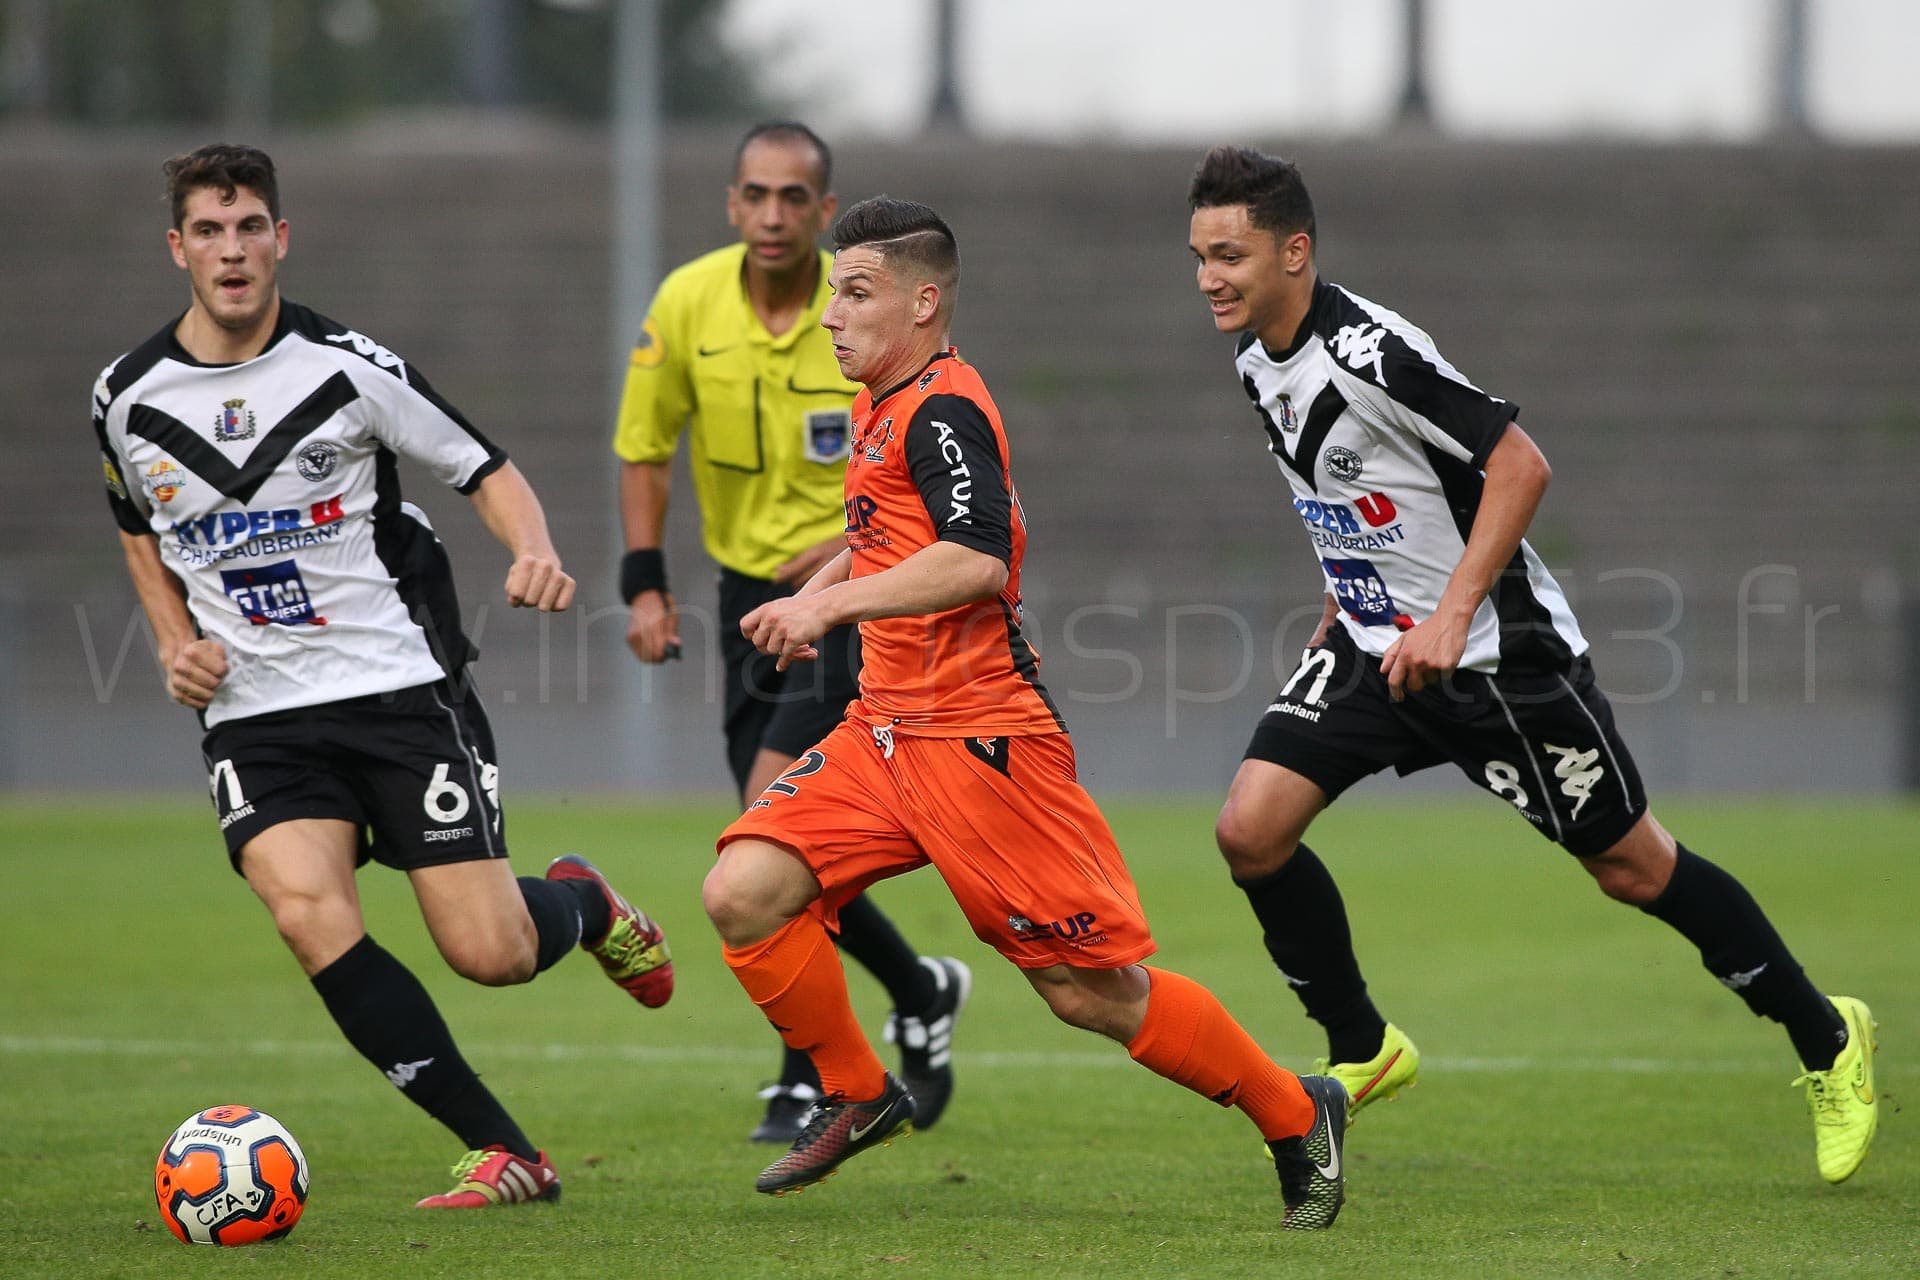 NG-CFA2-1415-J03-Laval-Chateaubriant_23